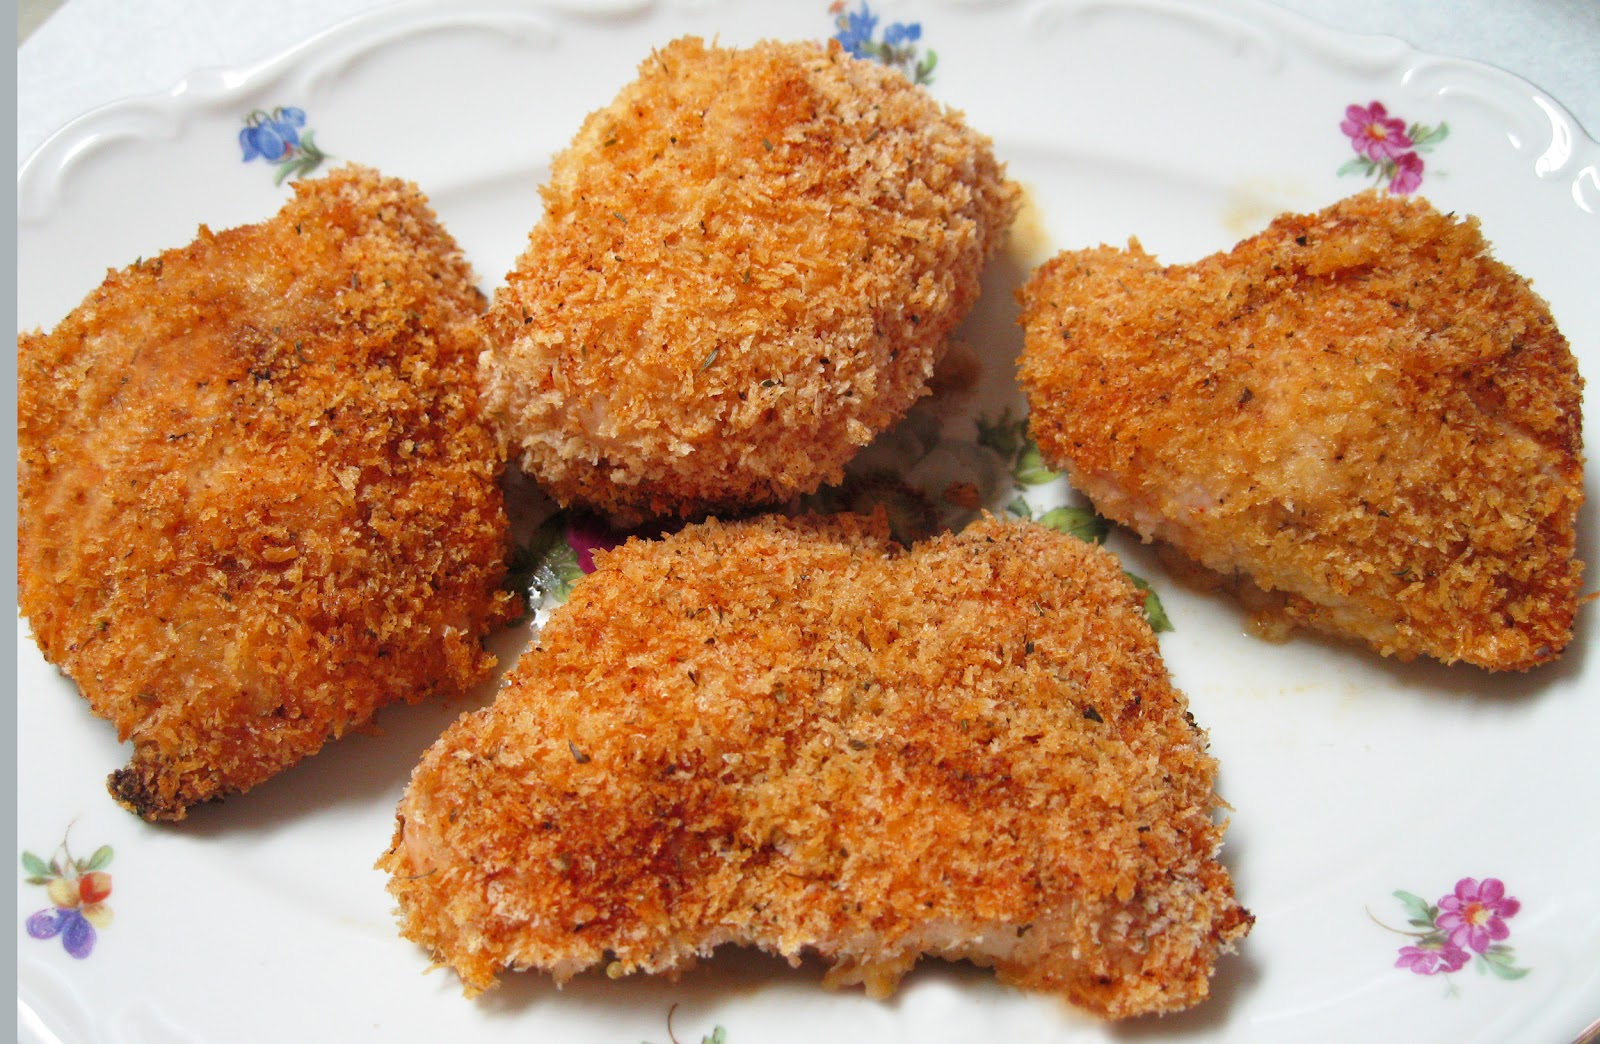 Here's another version of fried chicken using Panko bread crumbs.